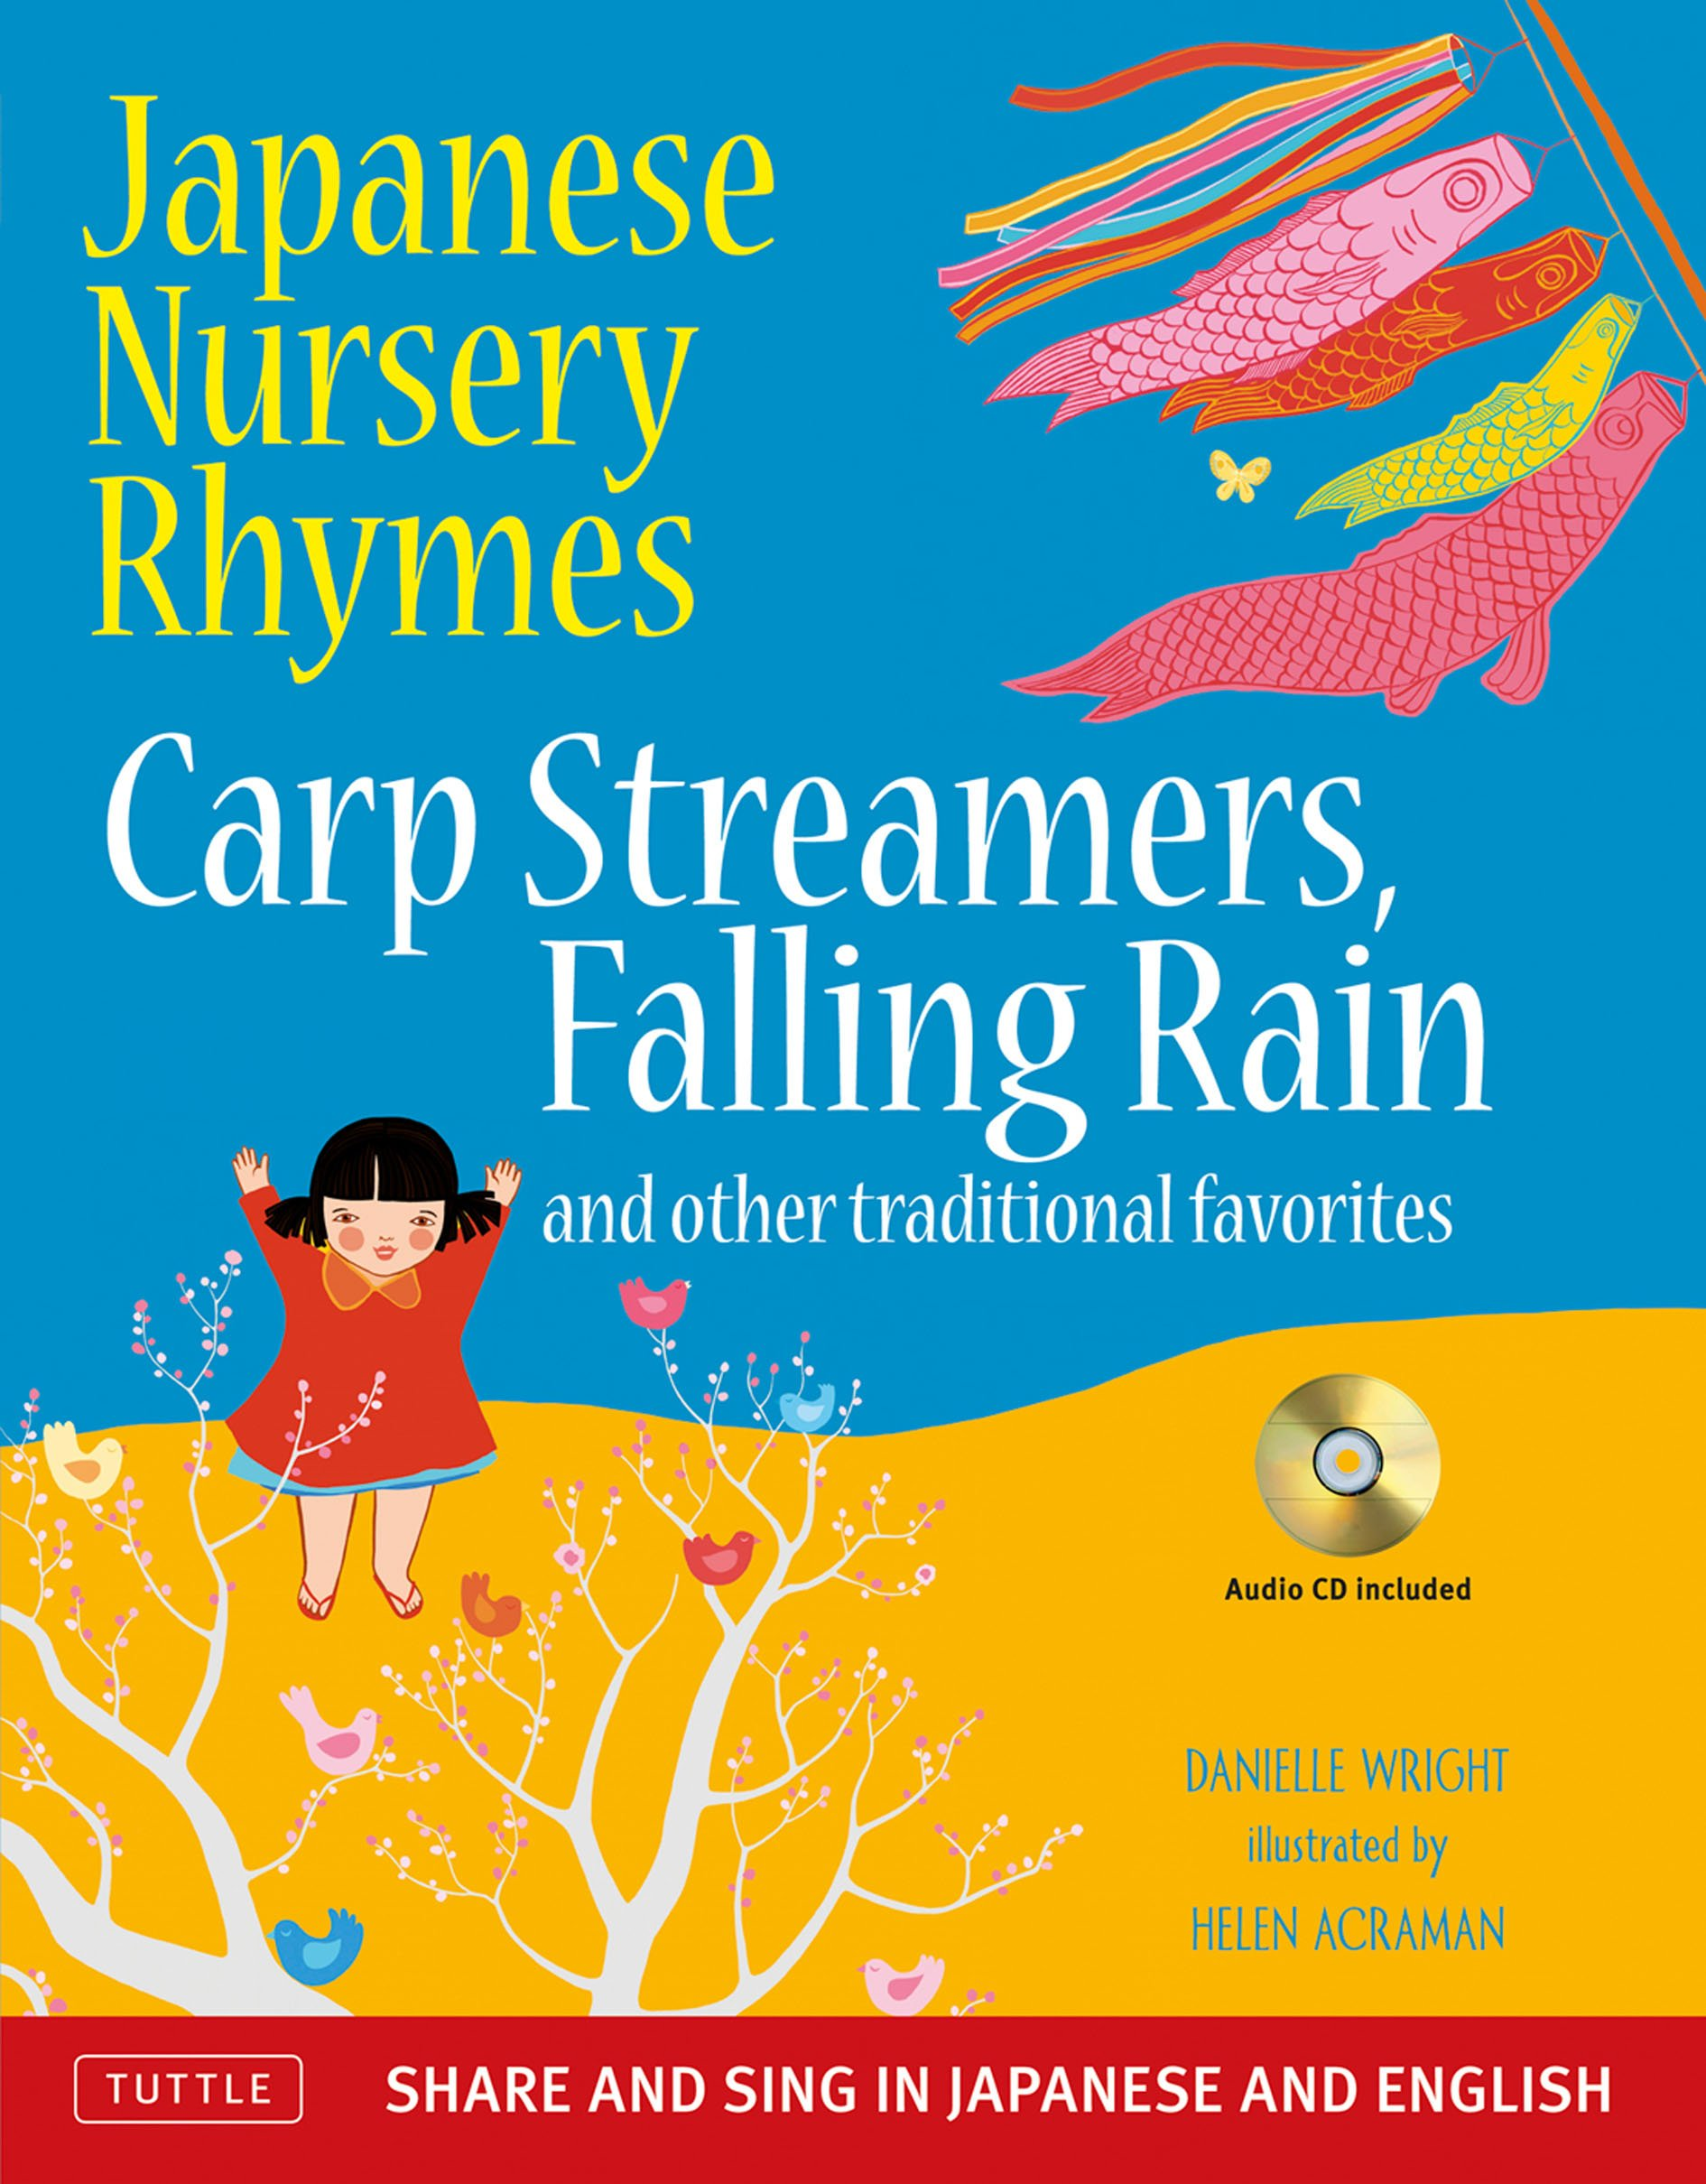 Japanese Nursery Rhymes: Carp Streamers, Falling Rain and Other Traditional Favorites (Share and Sing in Japanese & English; includes Audio CD) by Wright Danielle